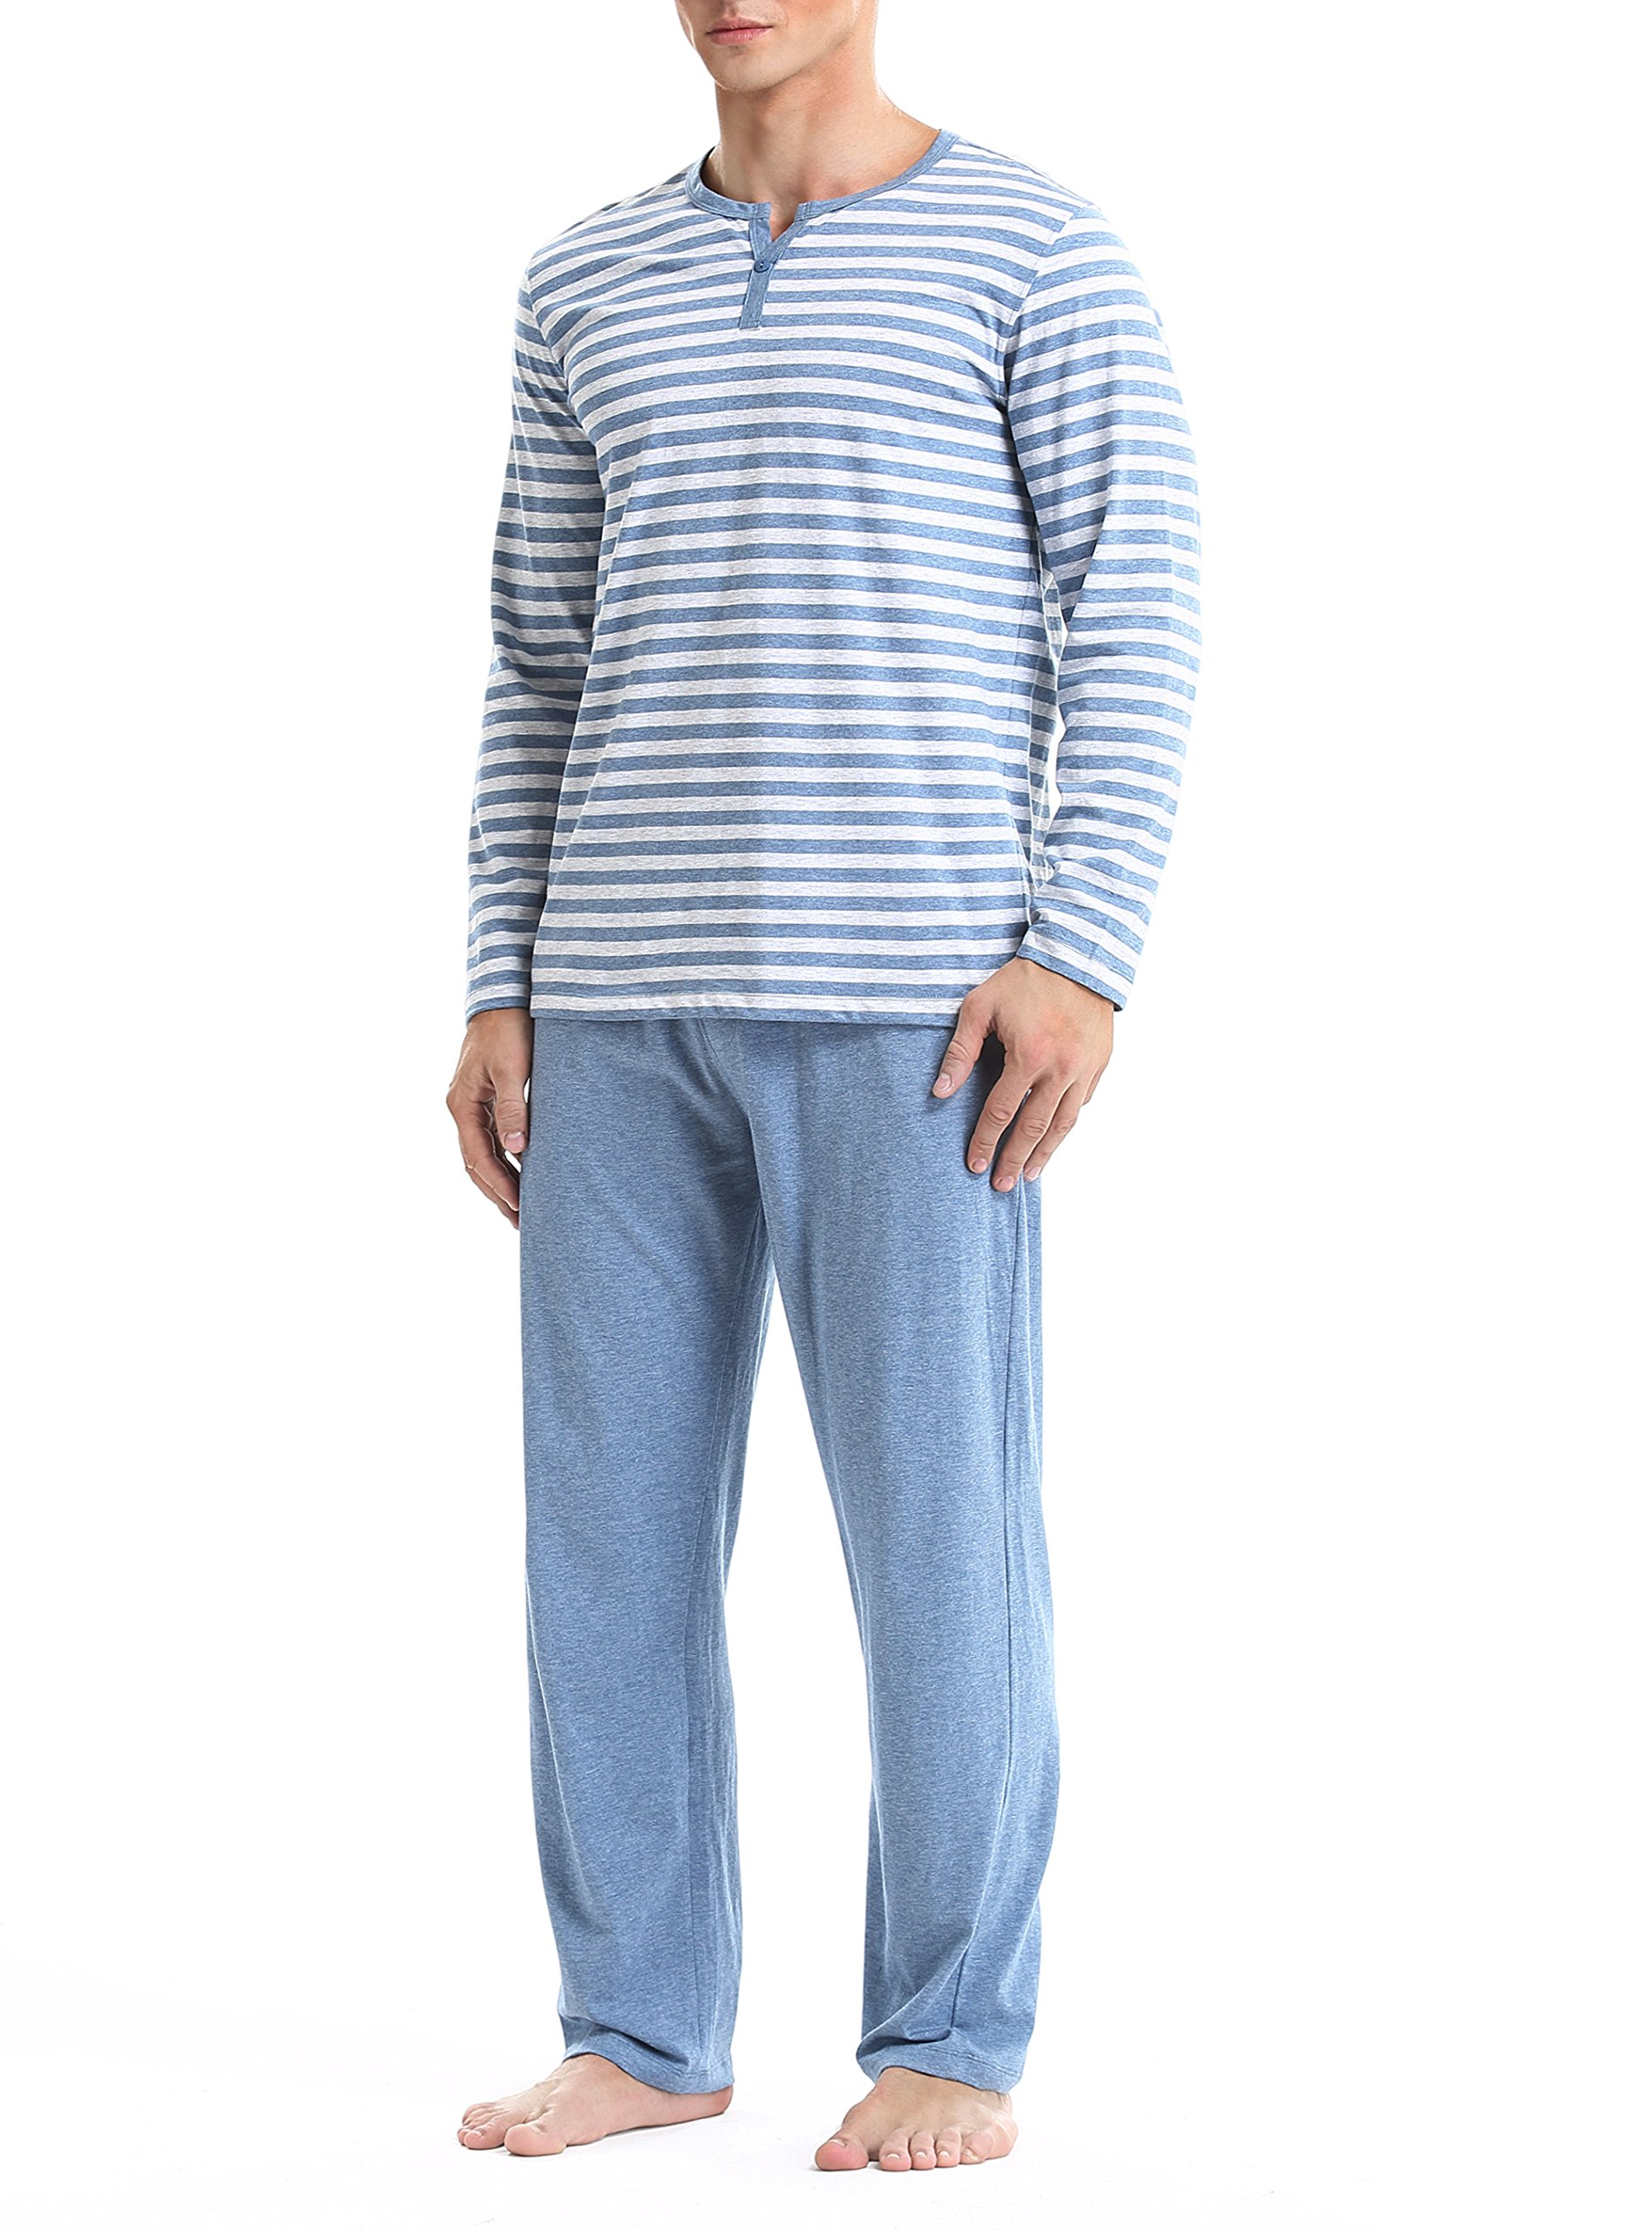 David Archy Men's Cotton Heather Striped Sleepwear Long Sleeve Top & Bottom Pajama Set (Heather Navy Blue, L)